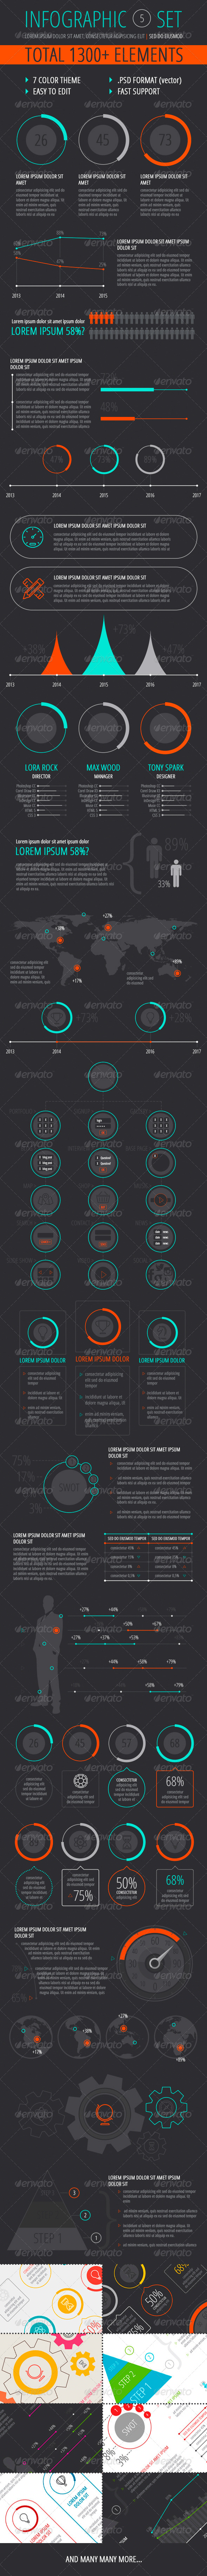 GraphicRiver Infographic Set 5 7499595